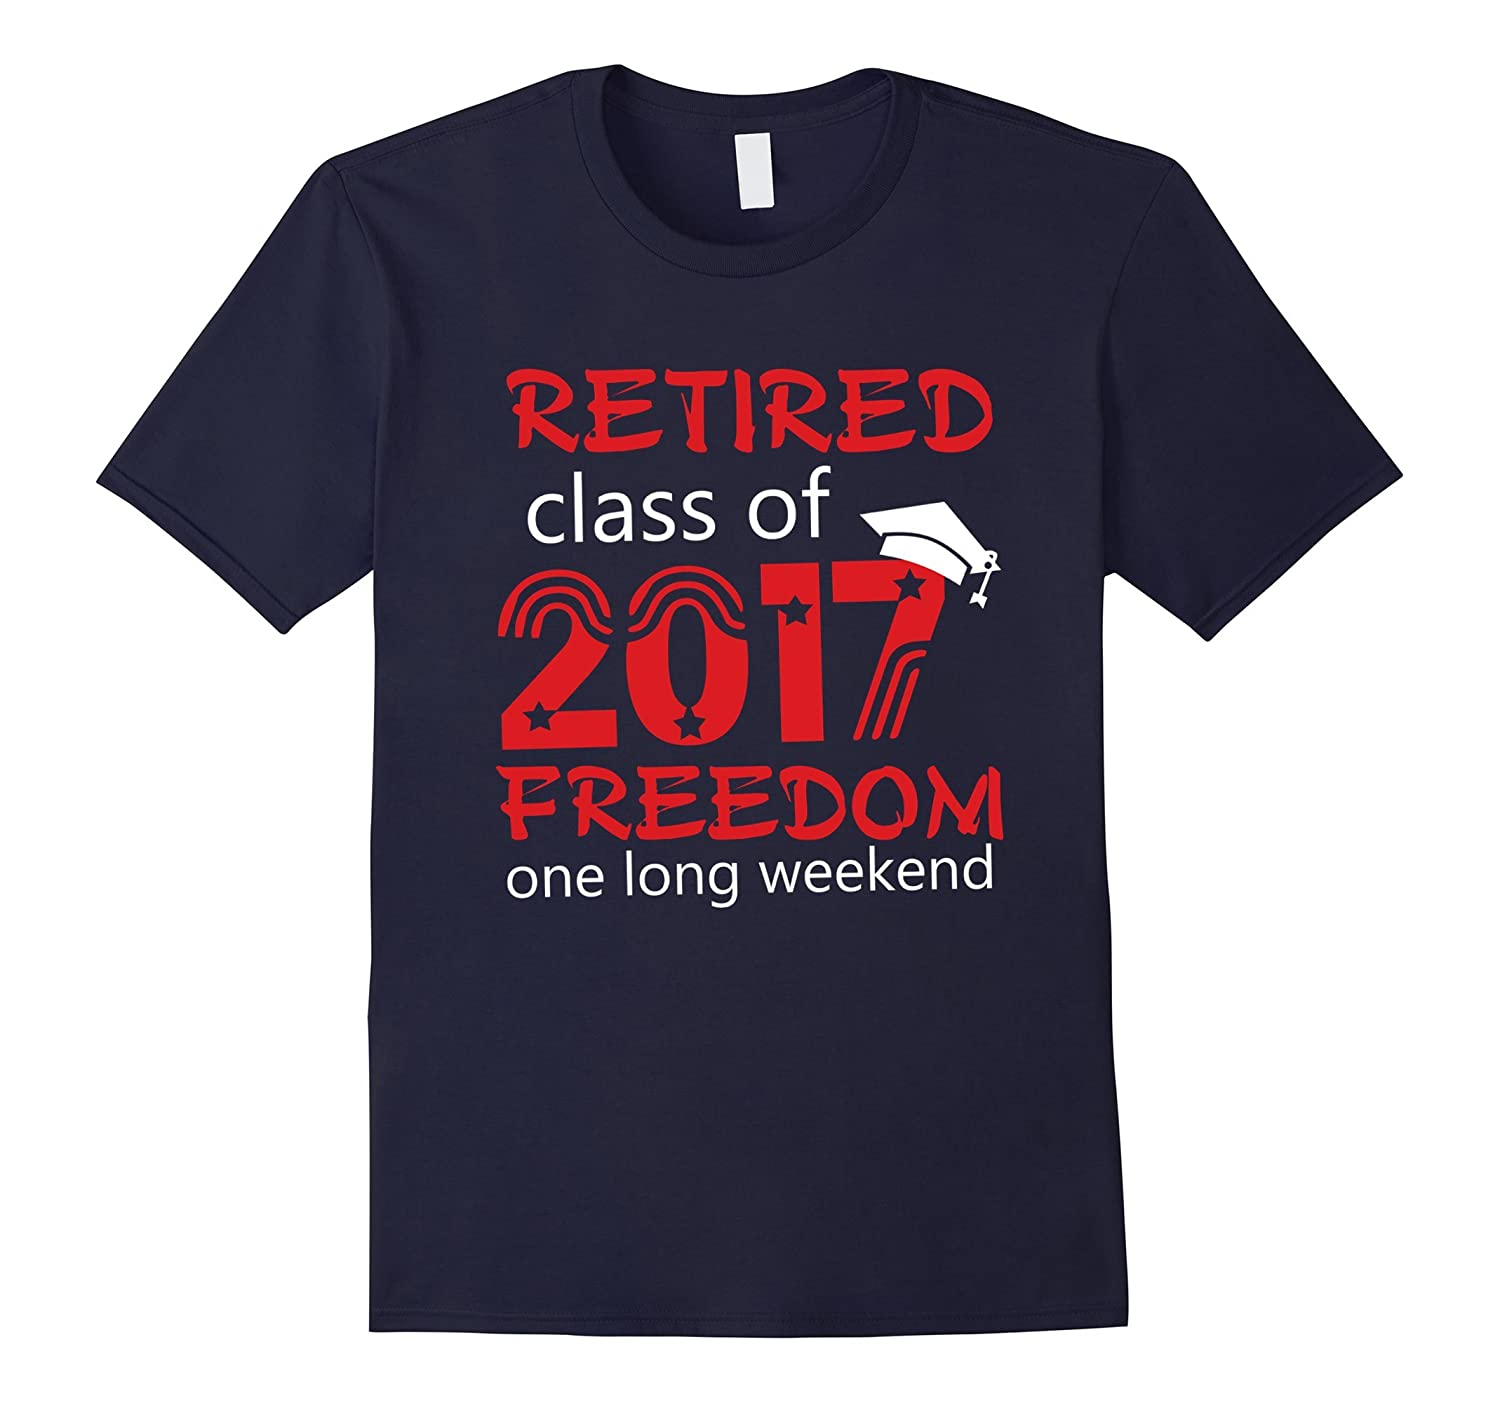 Retired Class of 2017 - Freedom one long weekend-Vaci